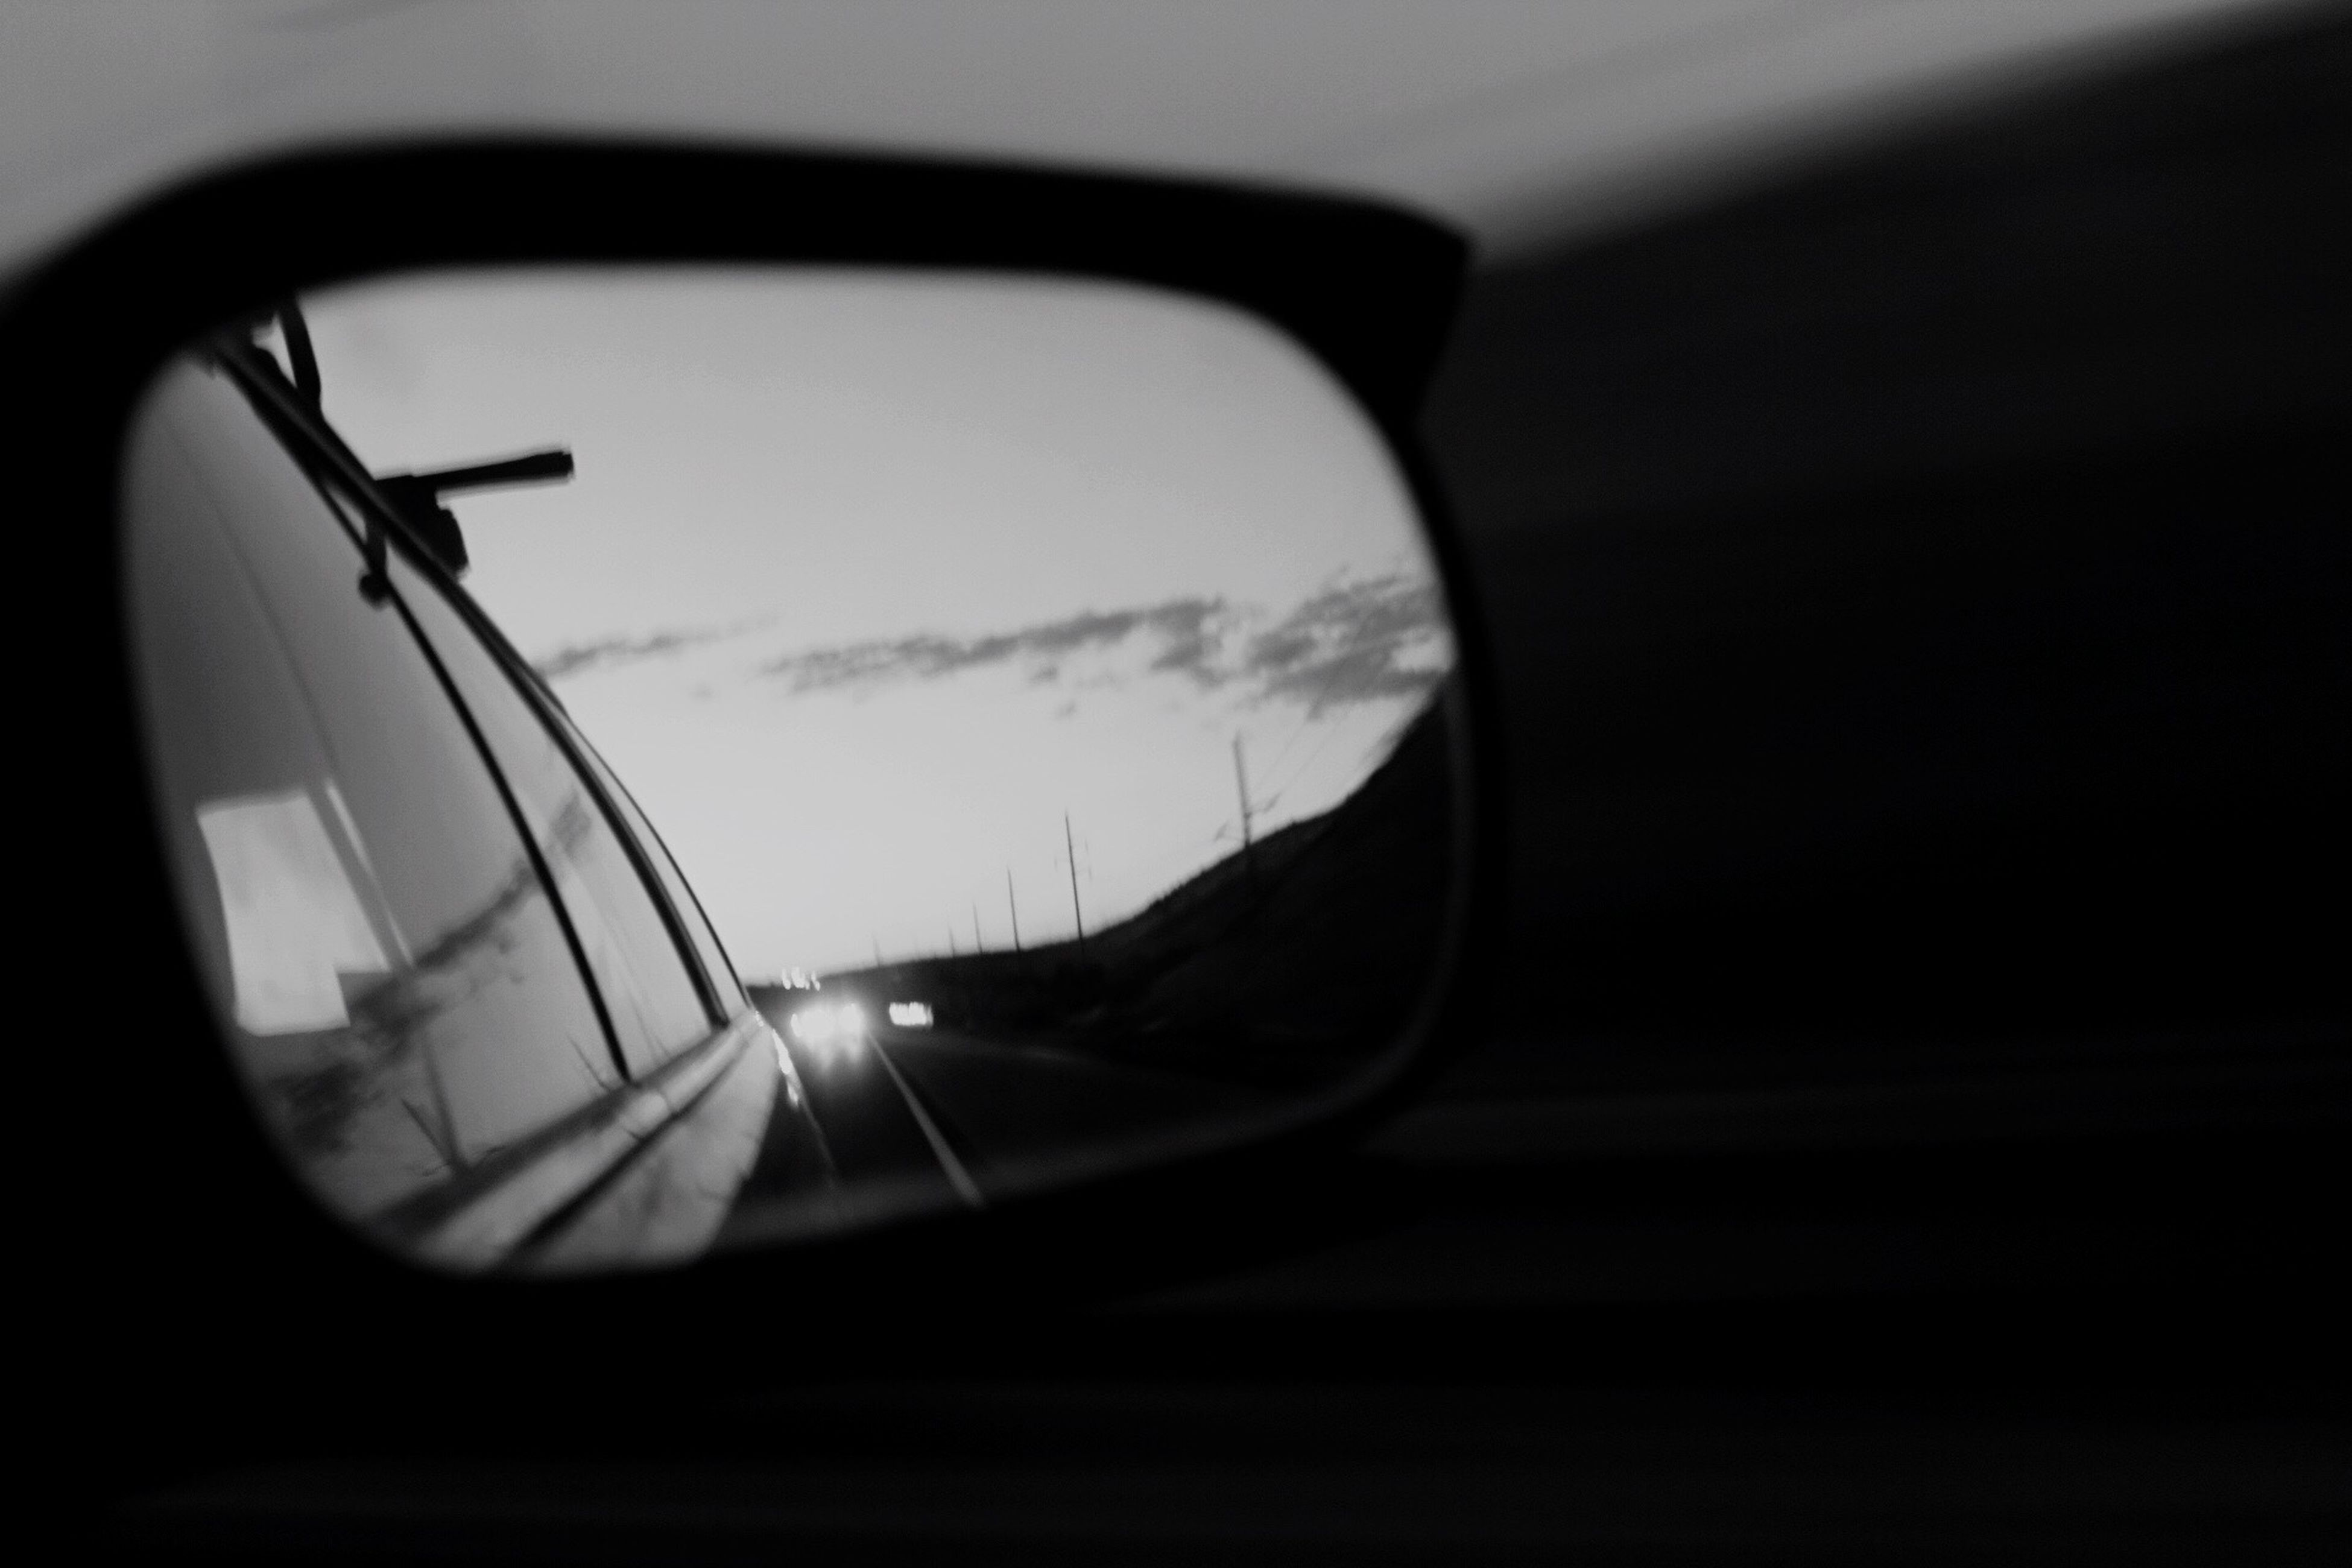 reflection, transportation, close-up, car, land vehicle, side-view mirror, sunset, sky, vehicle mirror, mode of transport, vehicle interior, car interior, glass, road, rear-view mirror, no people, tree, day, semi-circle, outdoors